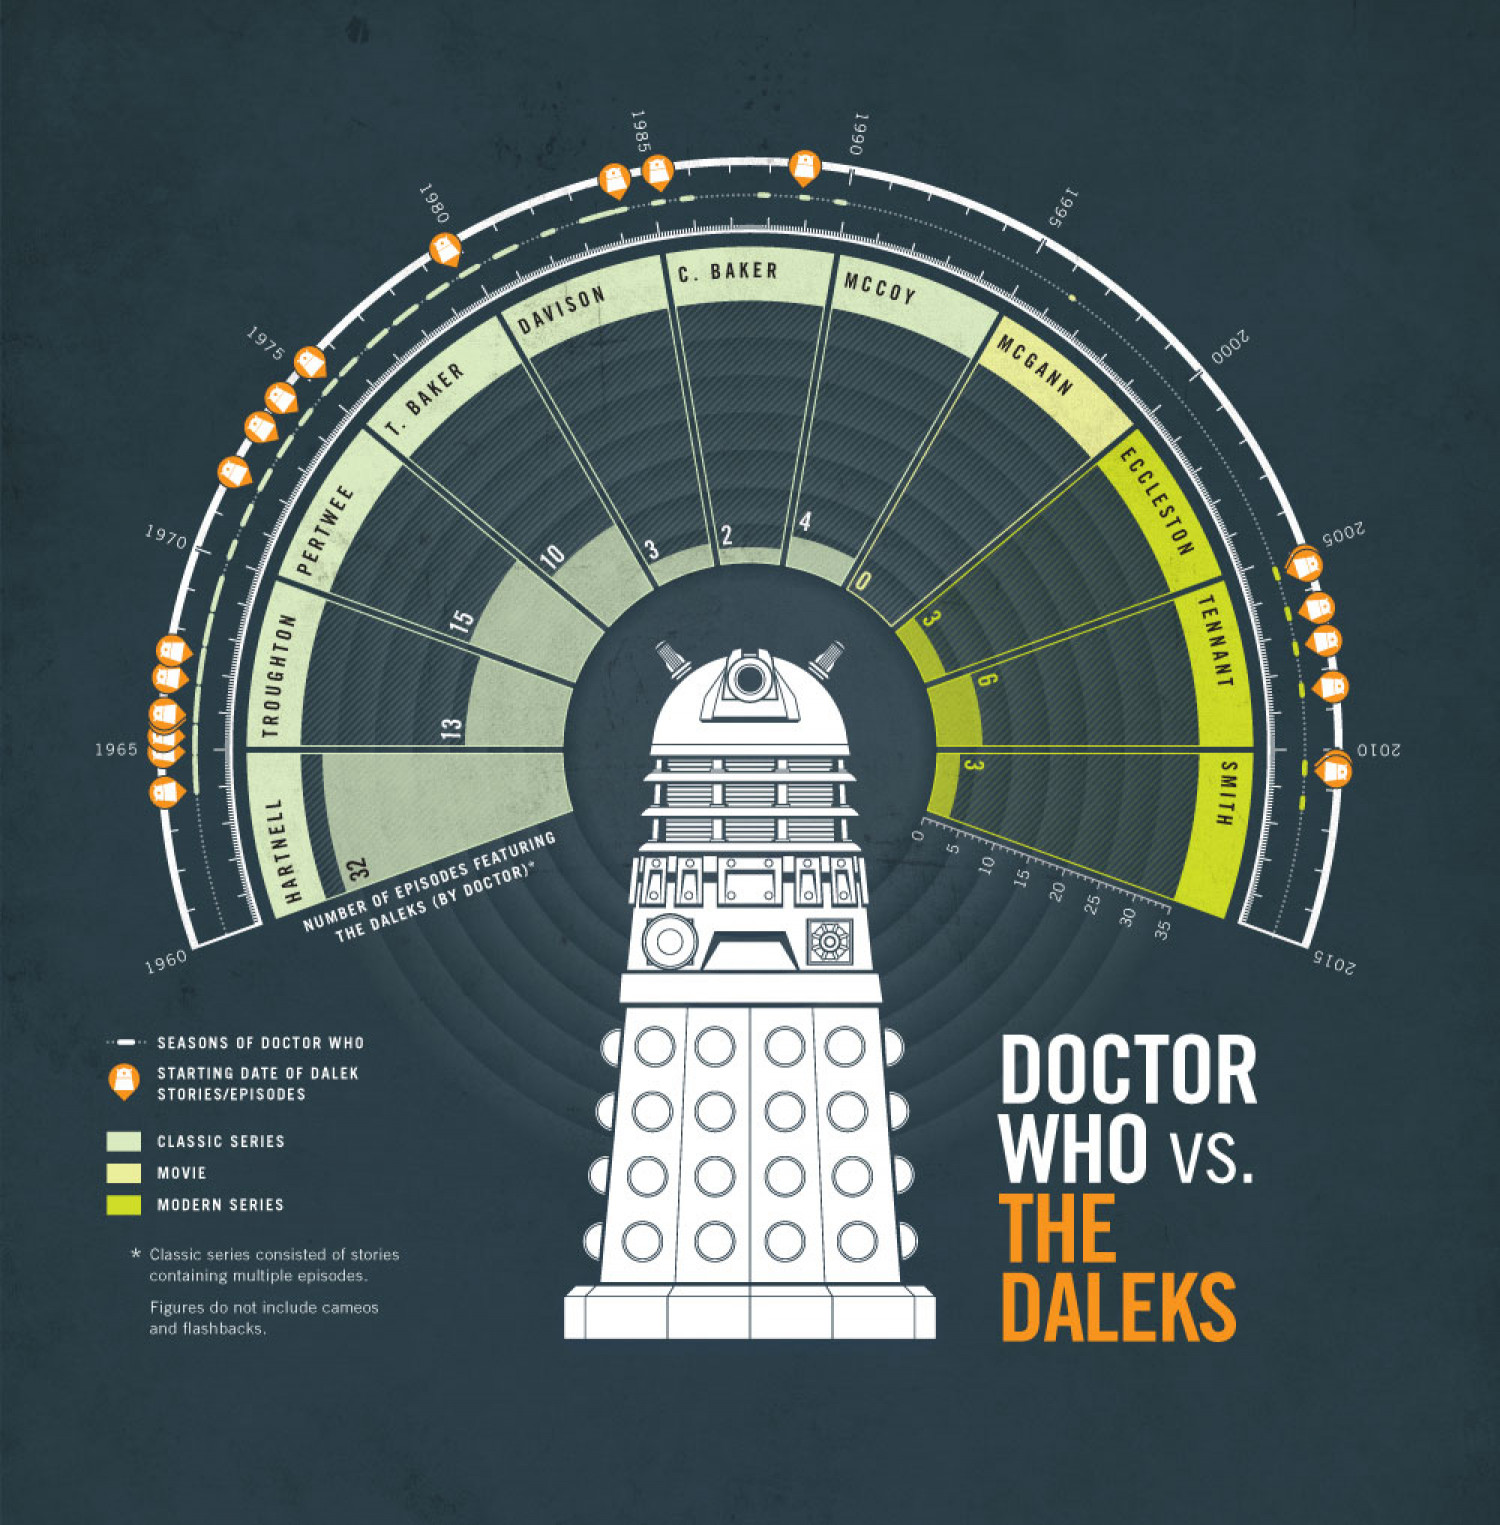 Doctor Who vs The Daleks Infographic